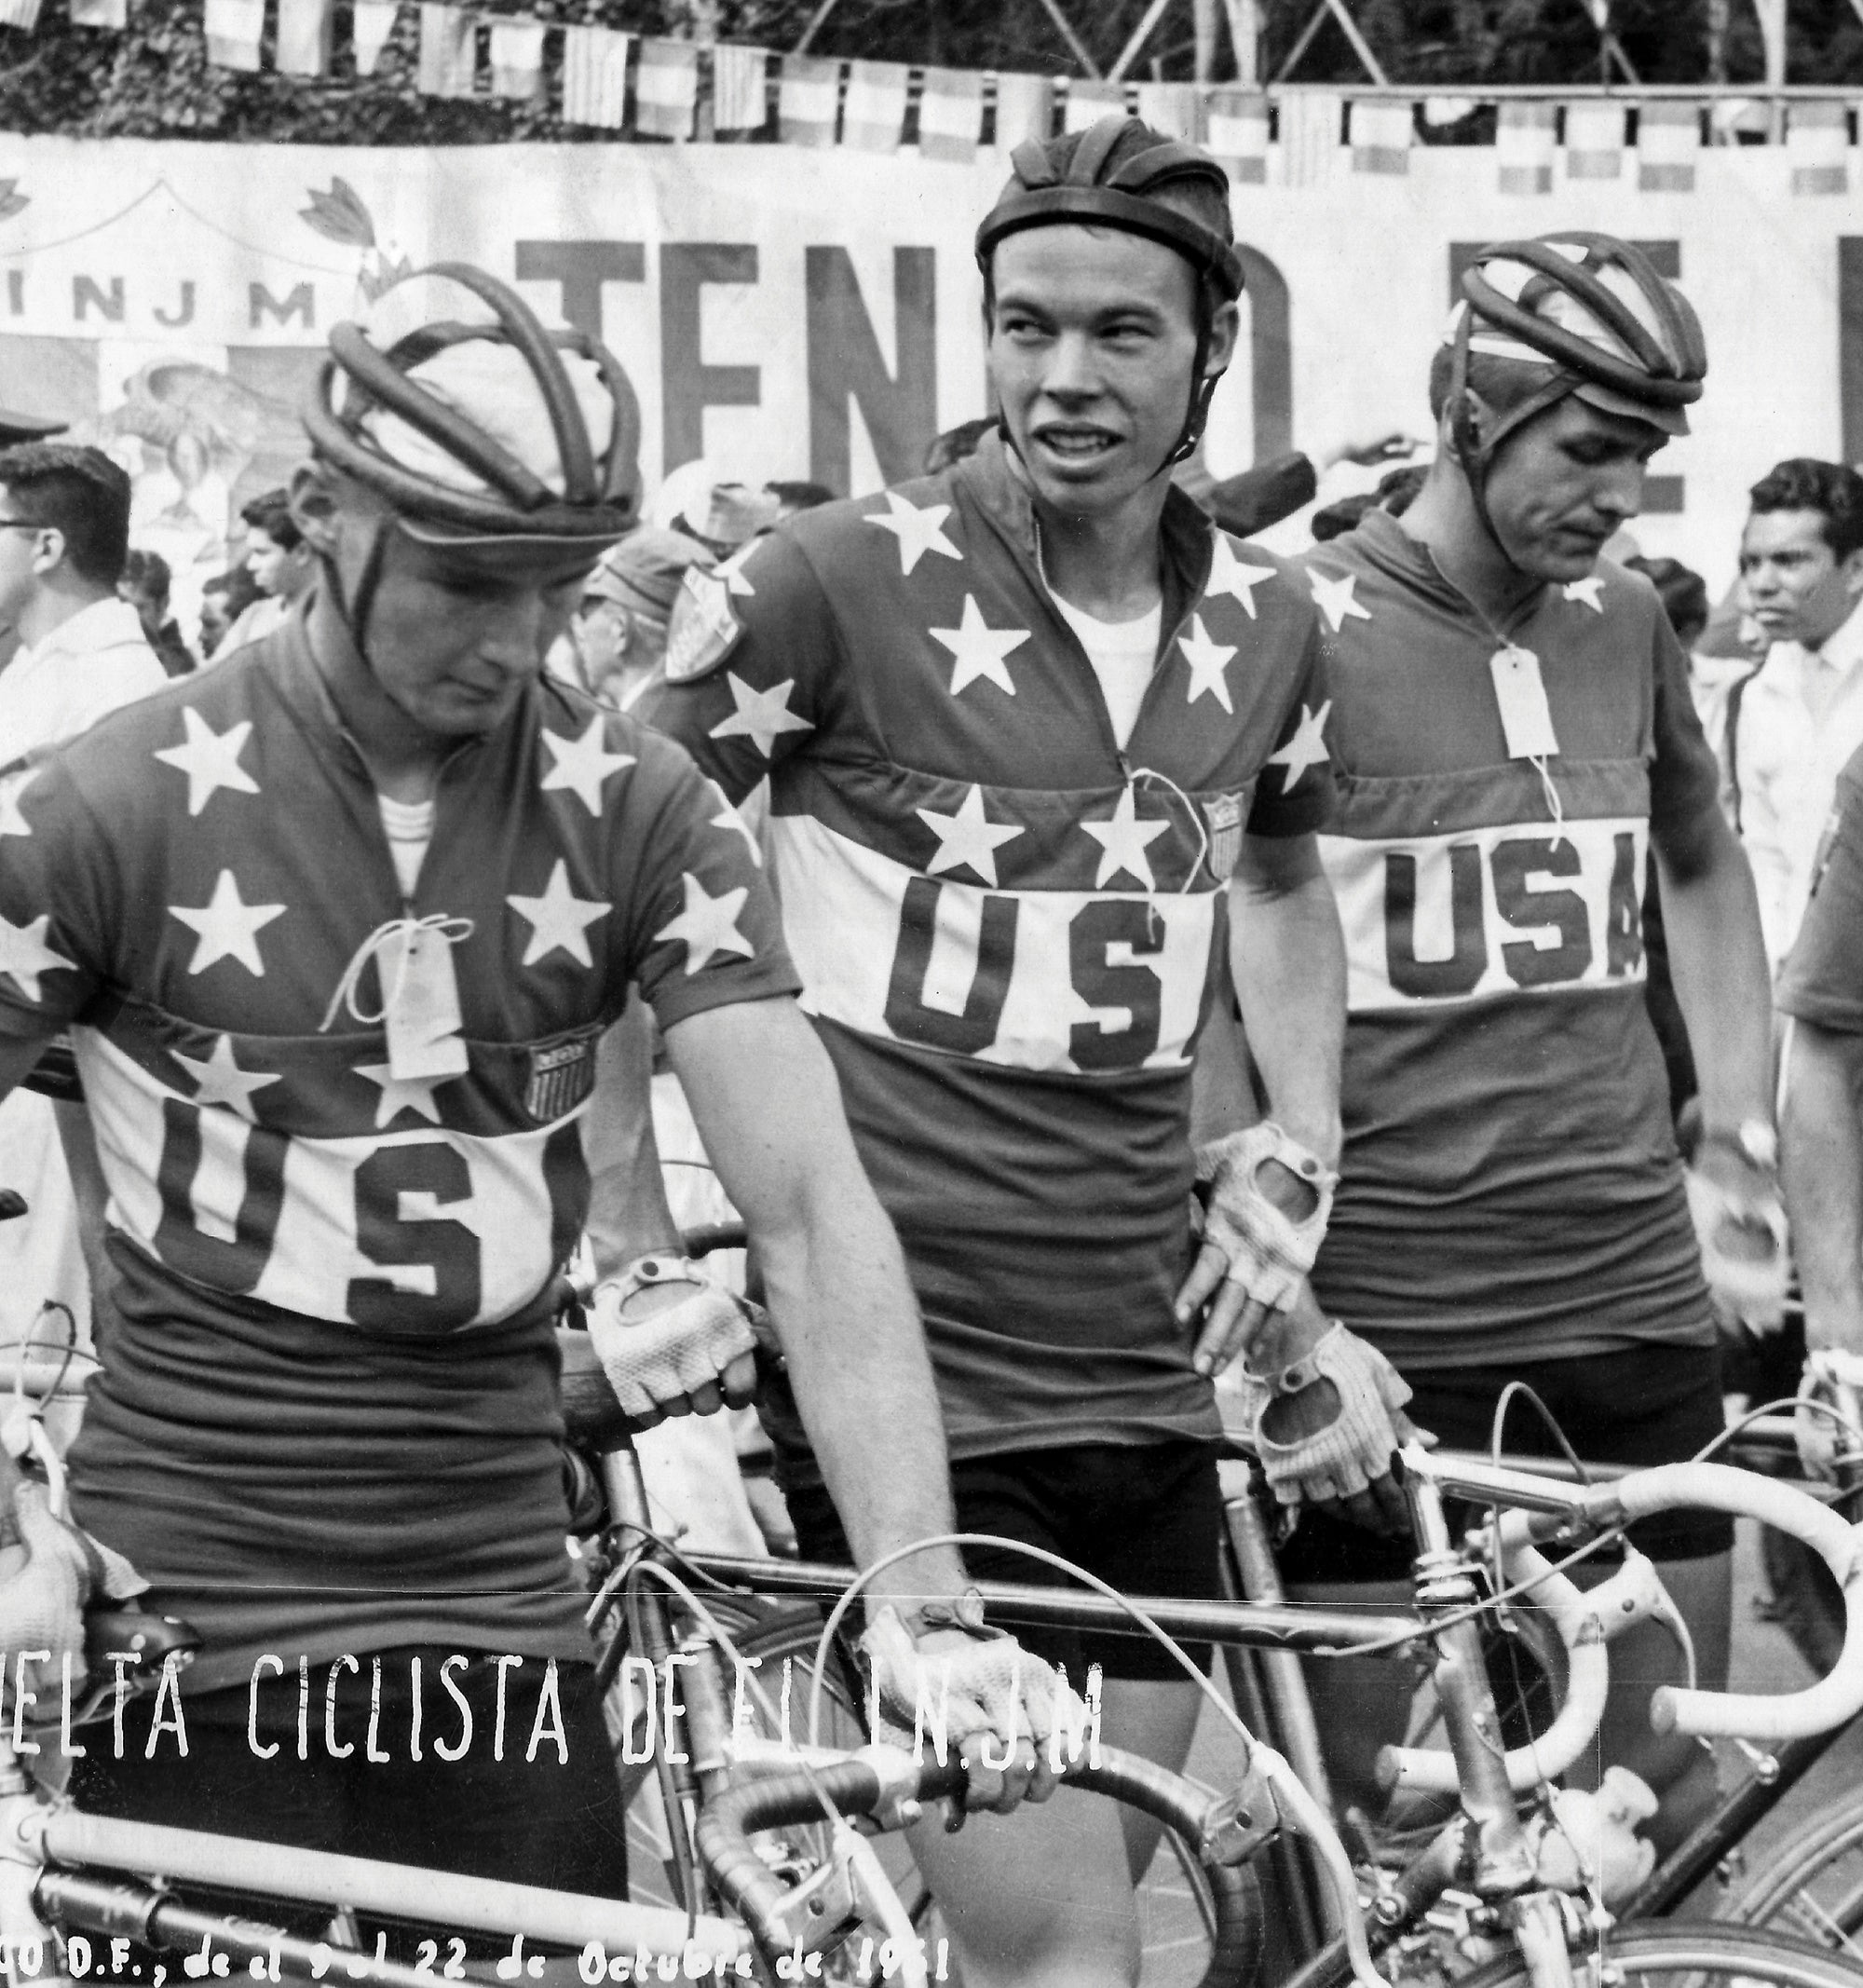 Ted Kirkbride (far right) representing the United States at the Vuelta Mexico in 1951